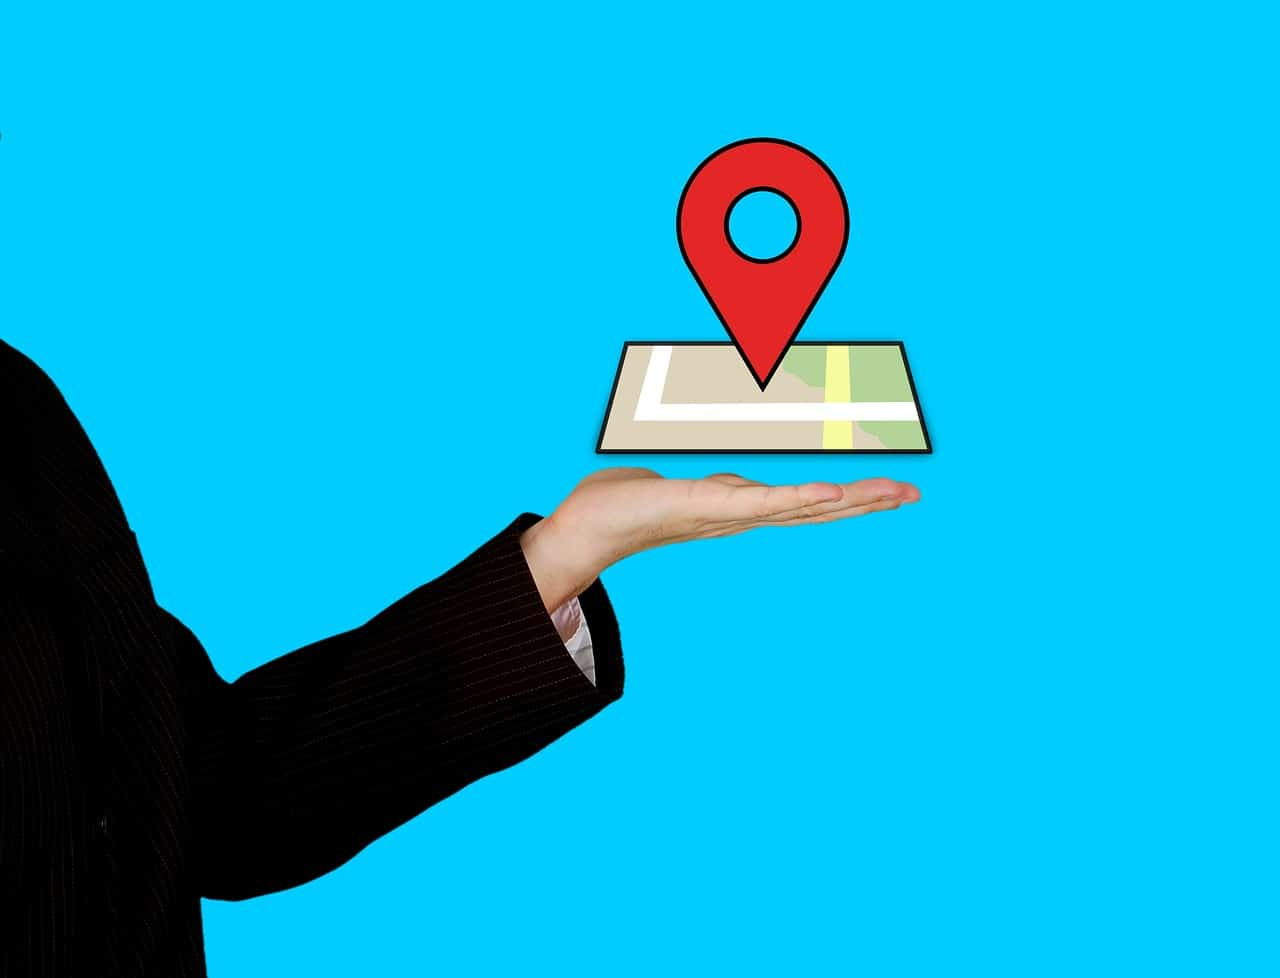 How To Add Your Business To Google Maps